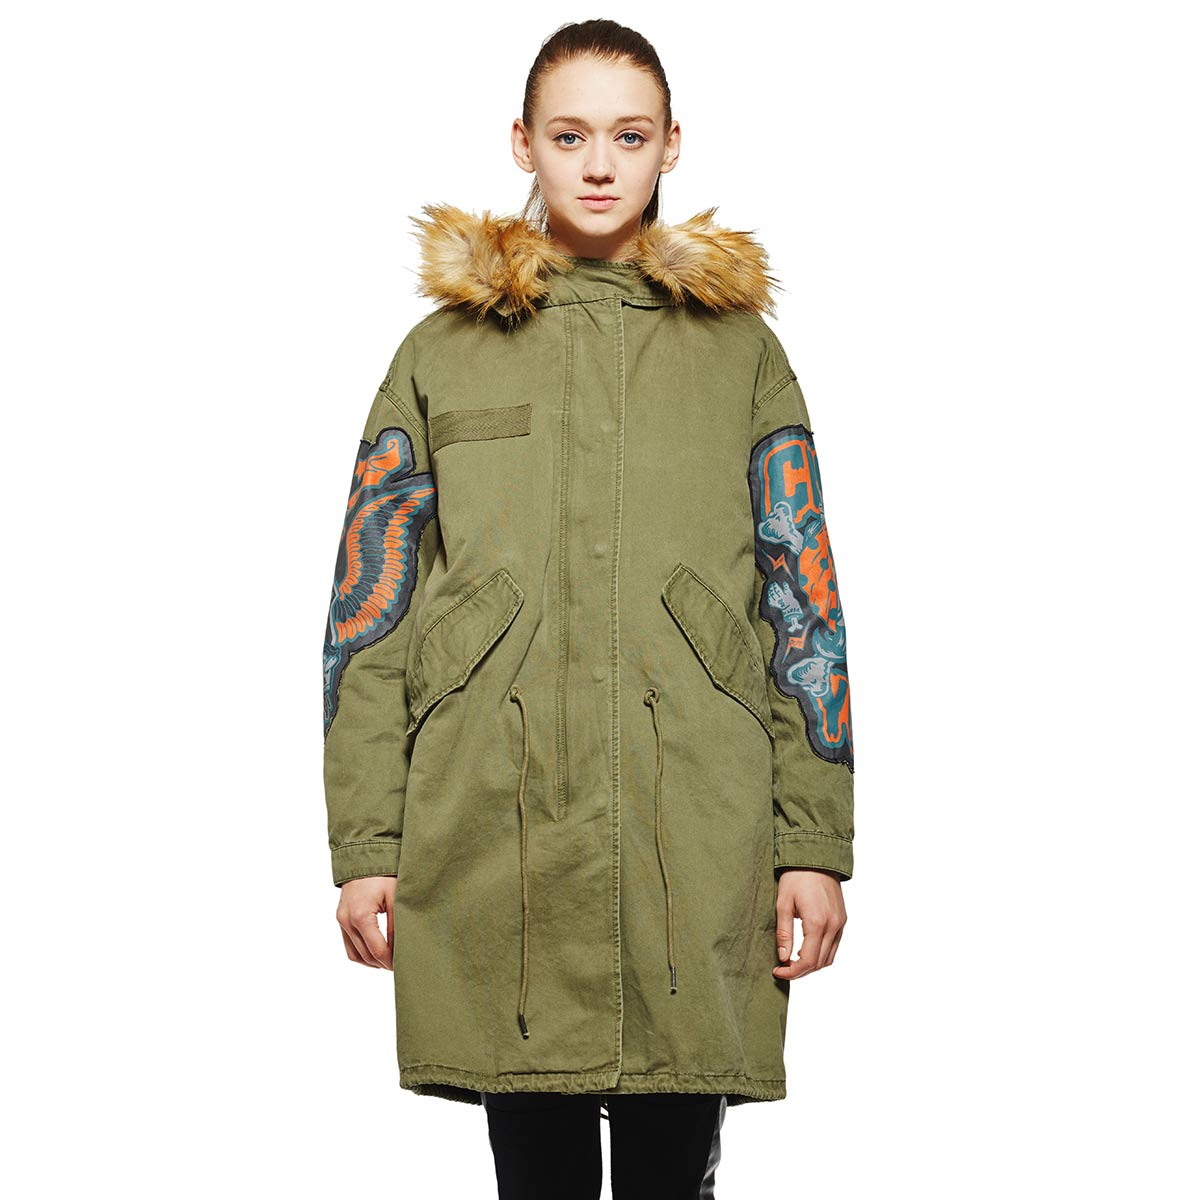 LOVEIS2015 winter new personality wild army green windbreaker coat long section of woven cloth coat jk205